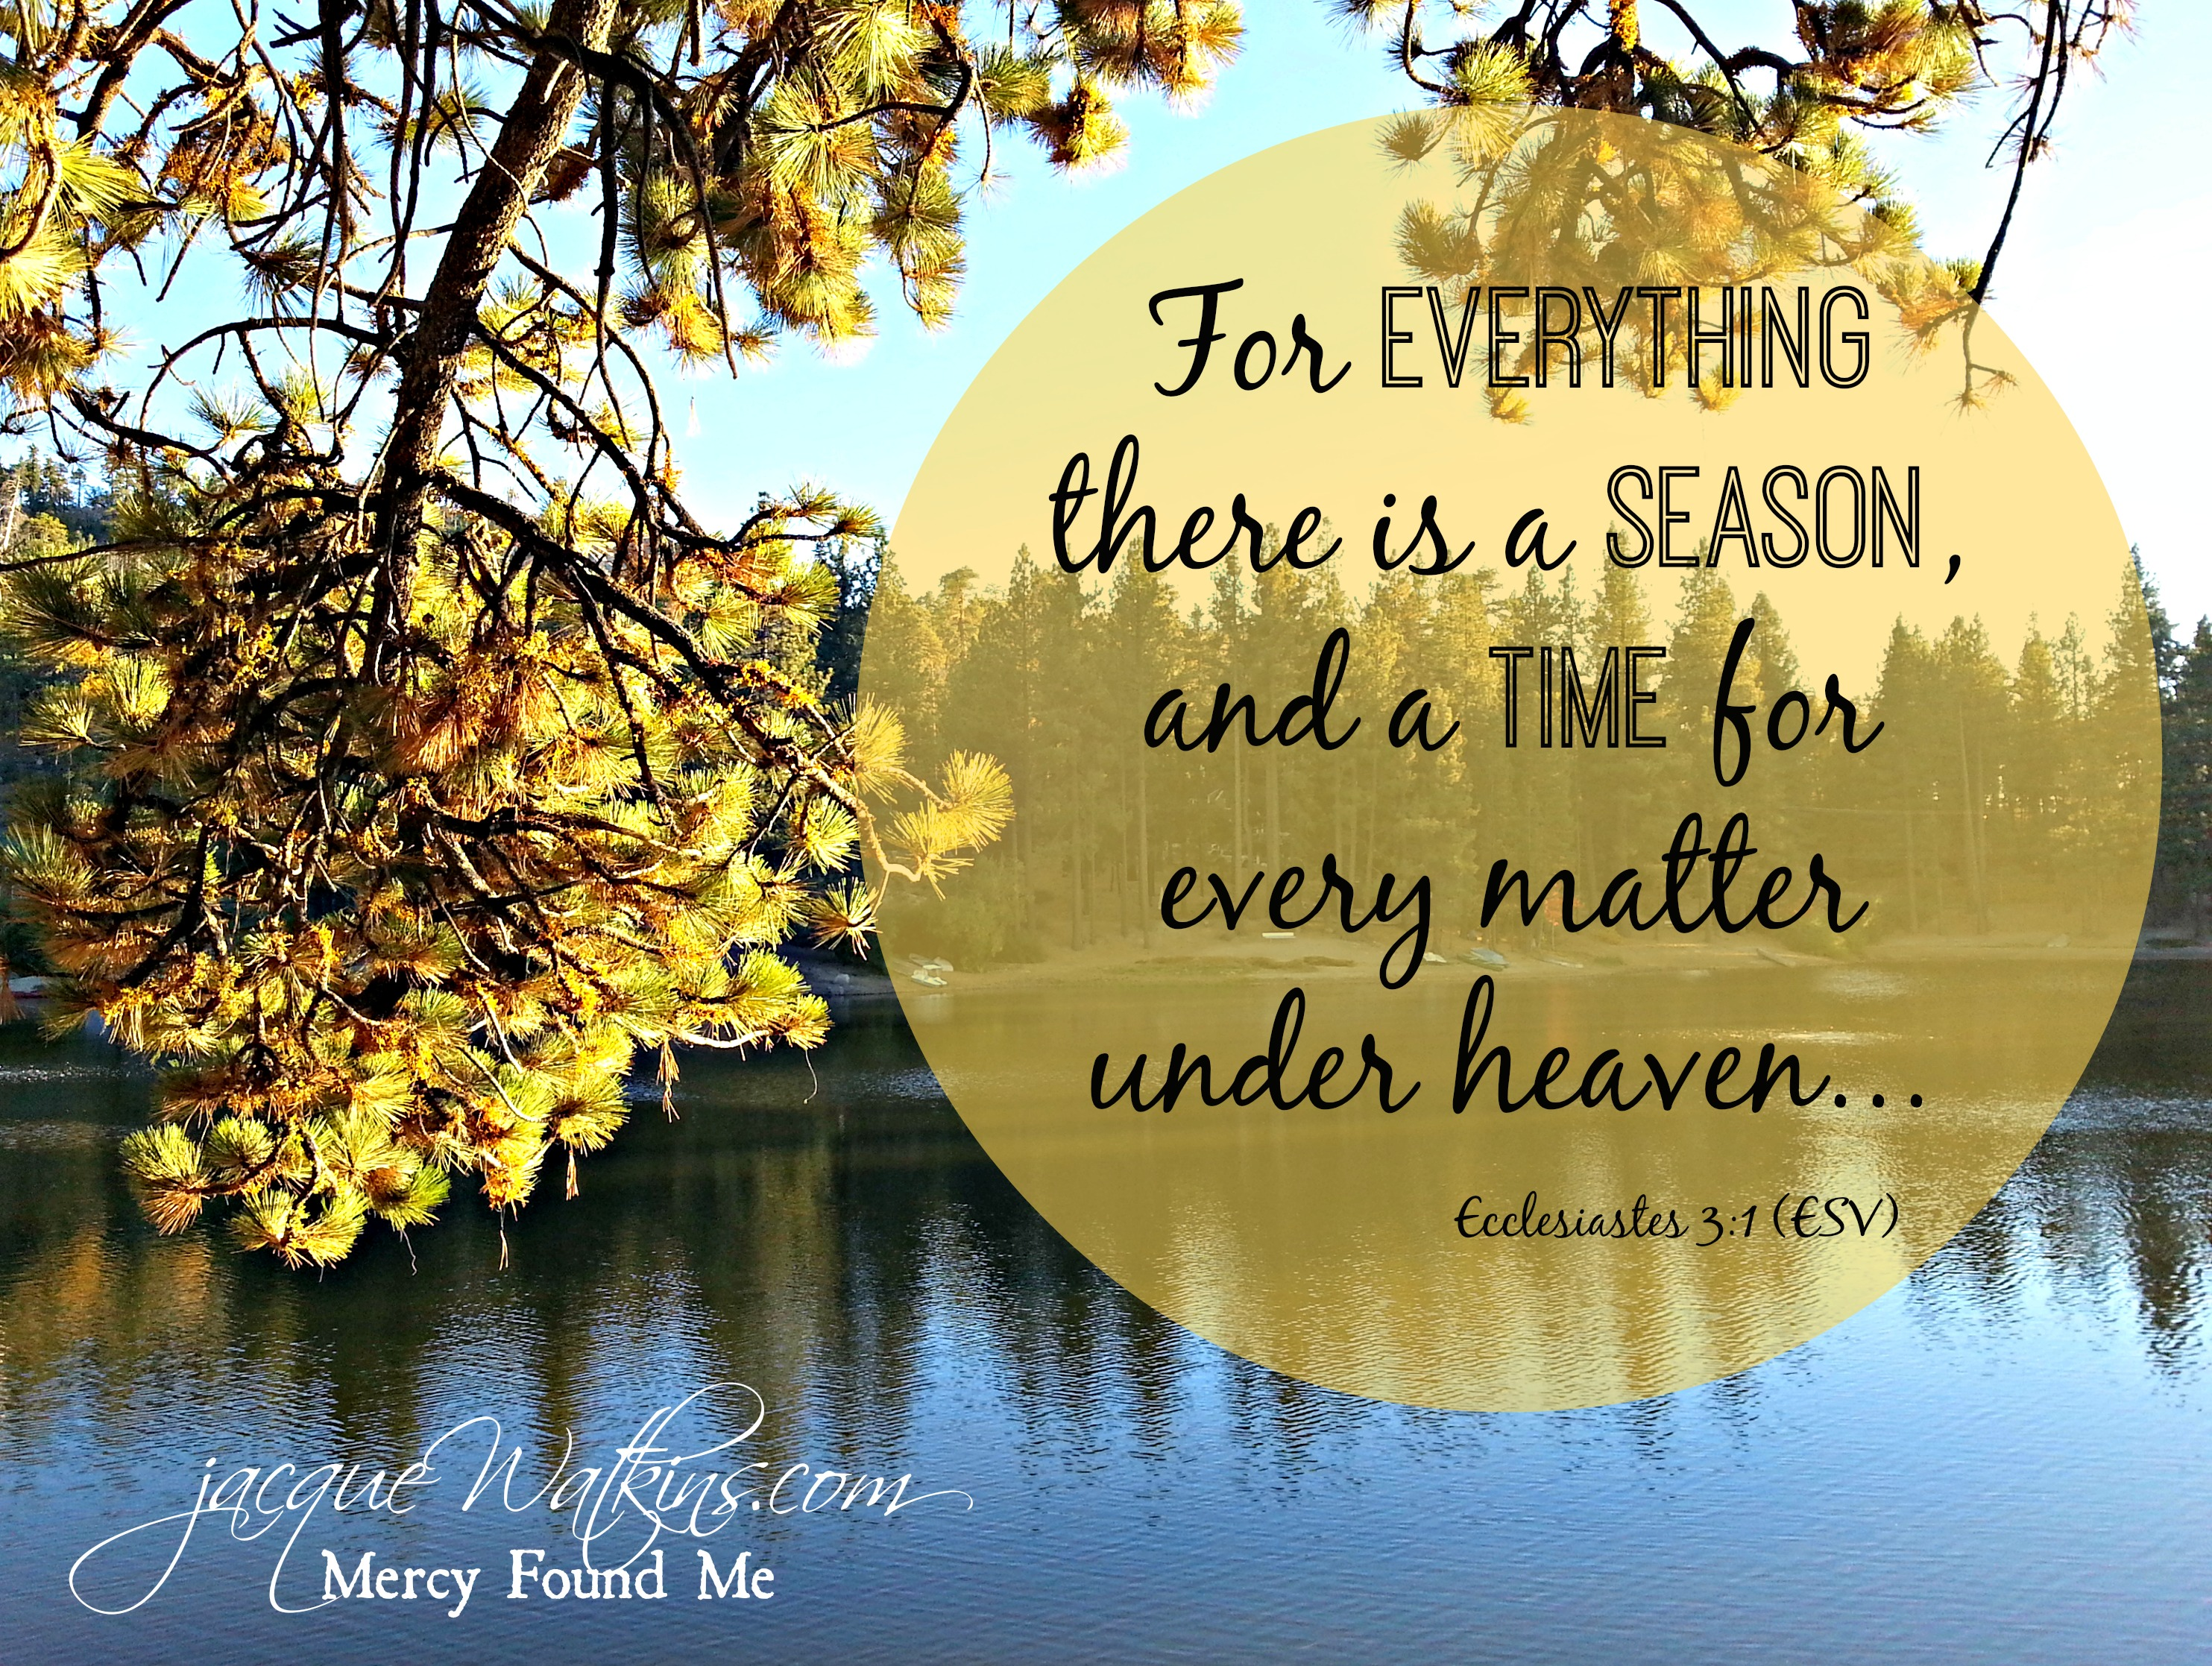 To Slow in This Season, and Reflect